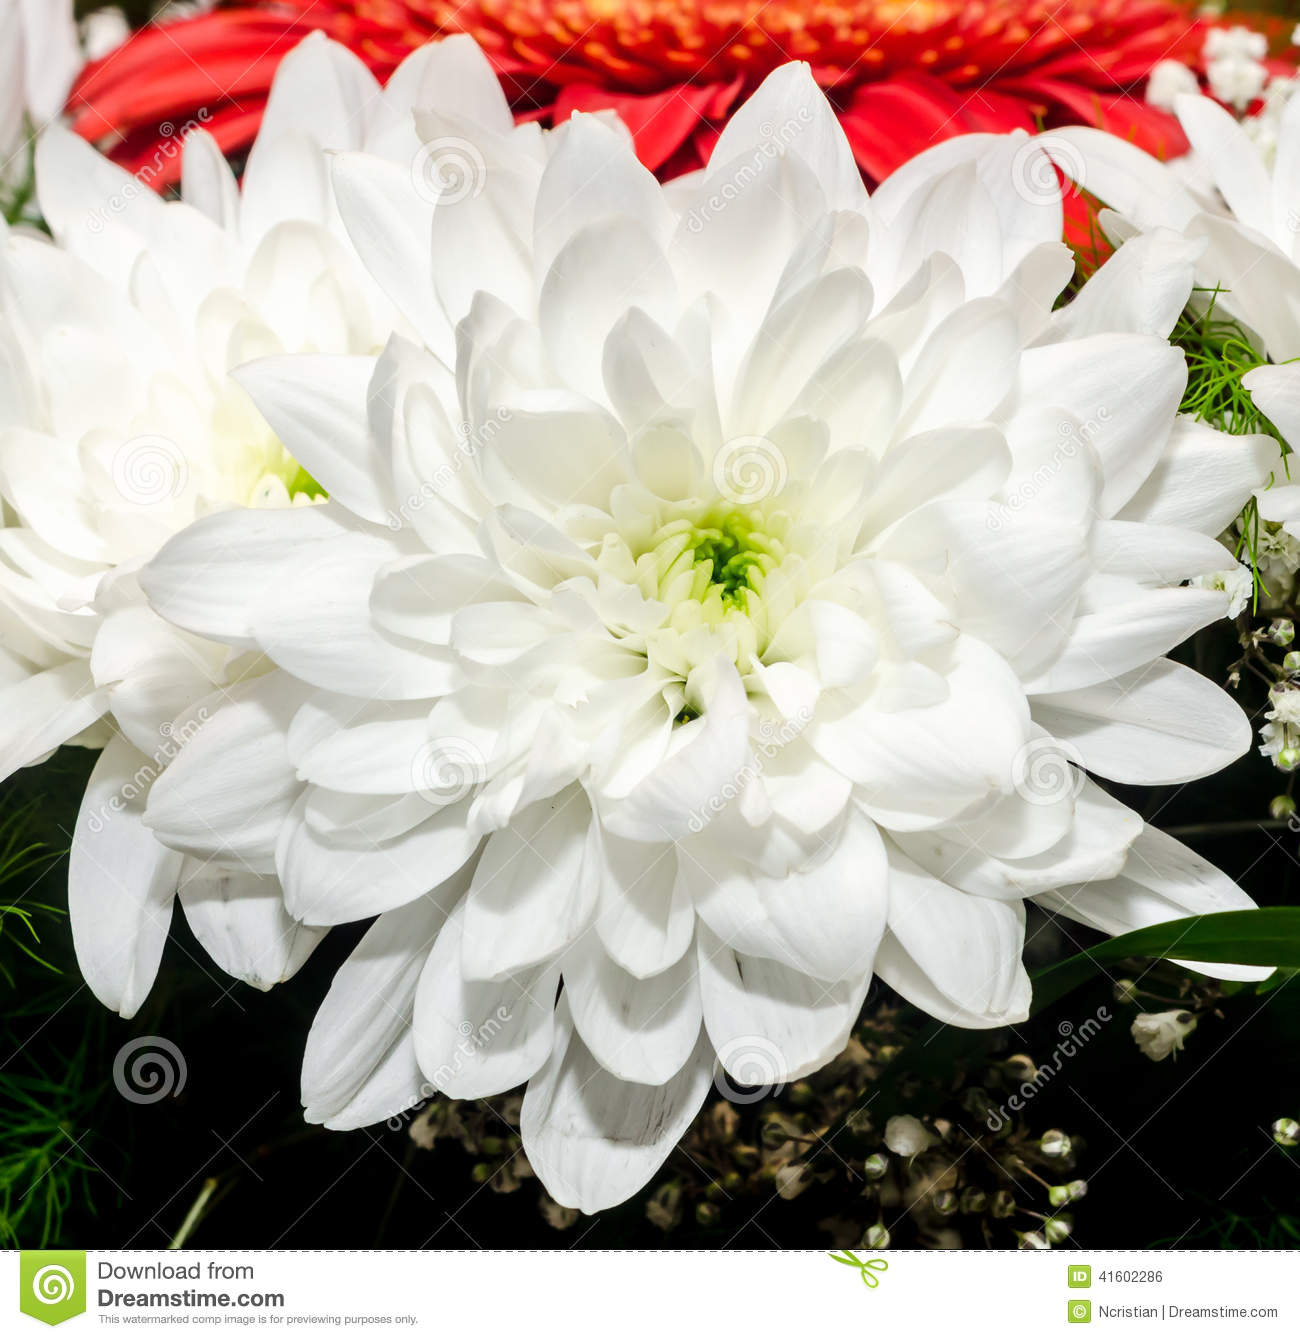 White chrysanthemum flowers stock photo image of bloom white chrysanthemum flowers mightylinksfo